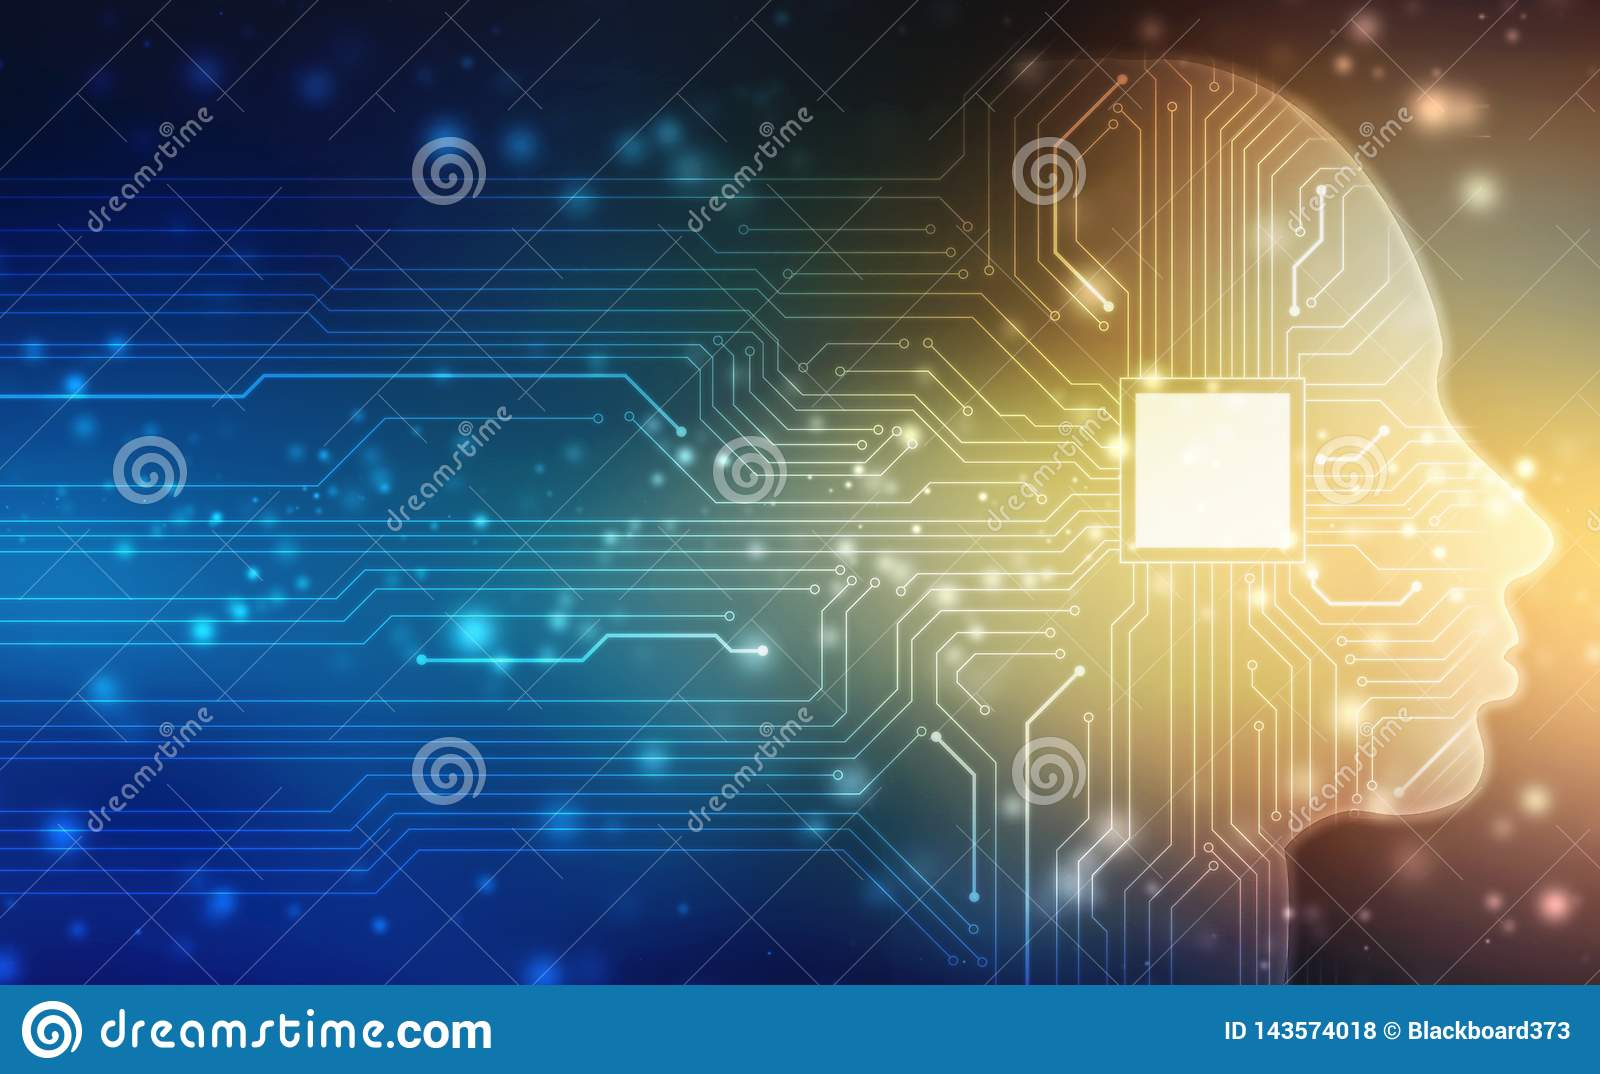 Abstract Artificial intelligence. Creative Brain Concept, Concept of thinking, Virtual concept, futuristic abstract background